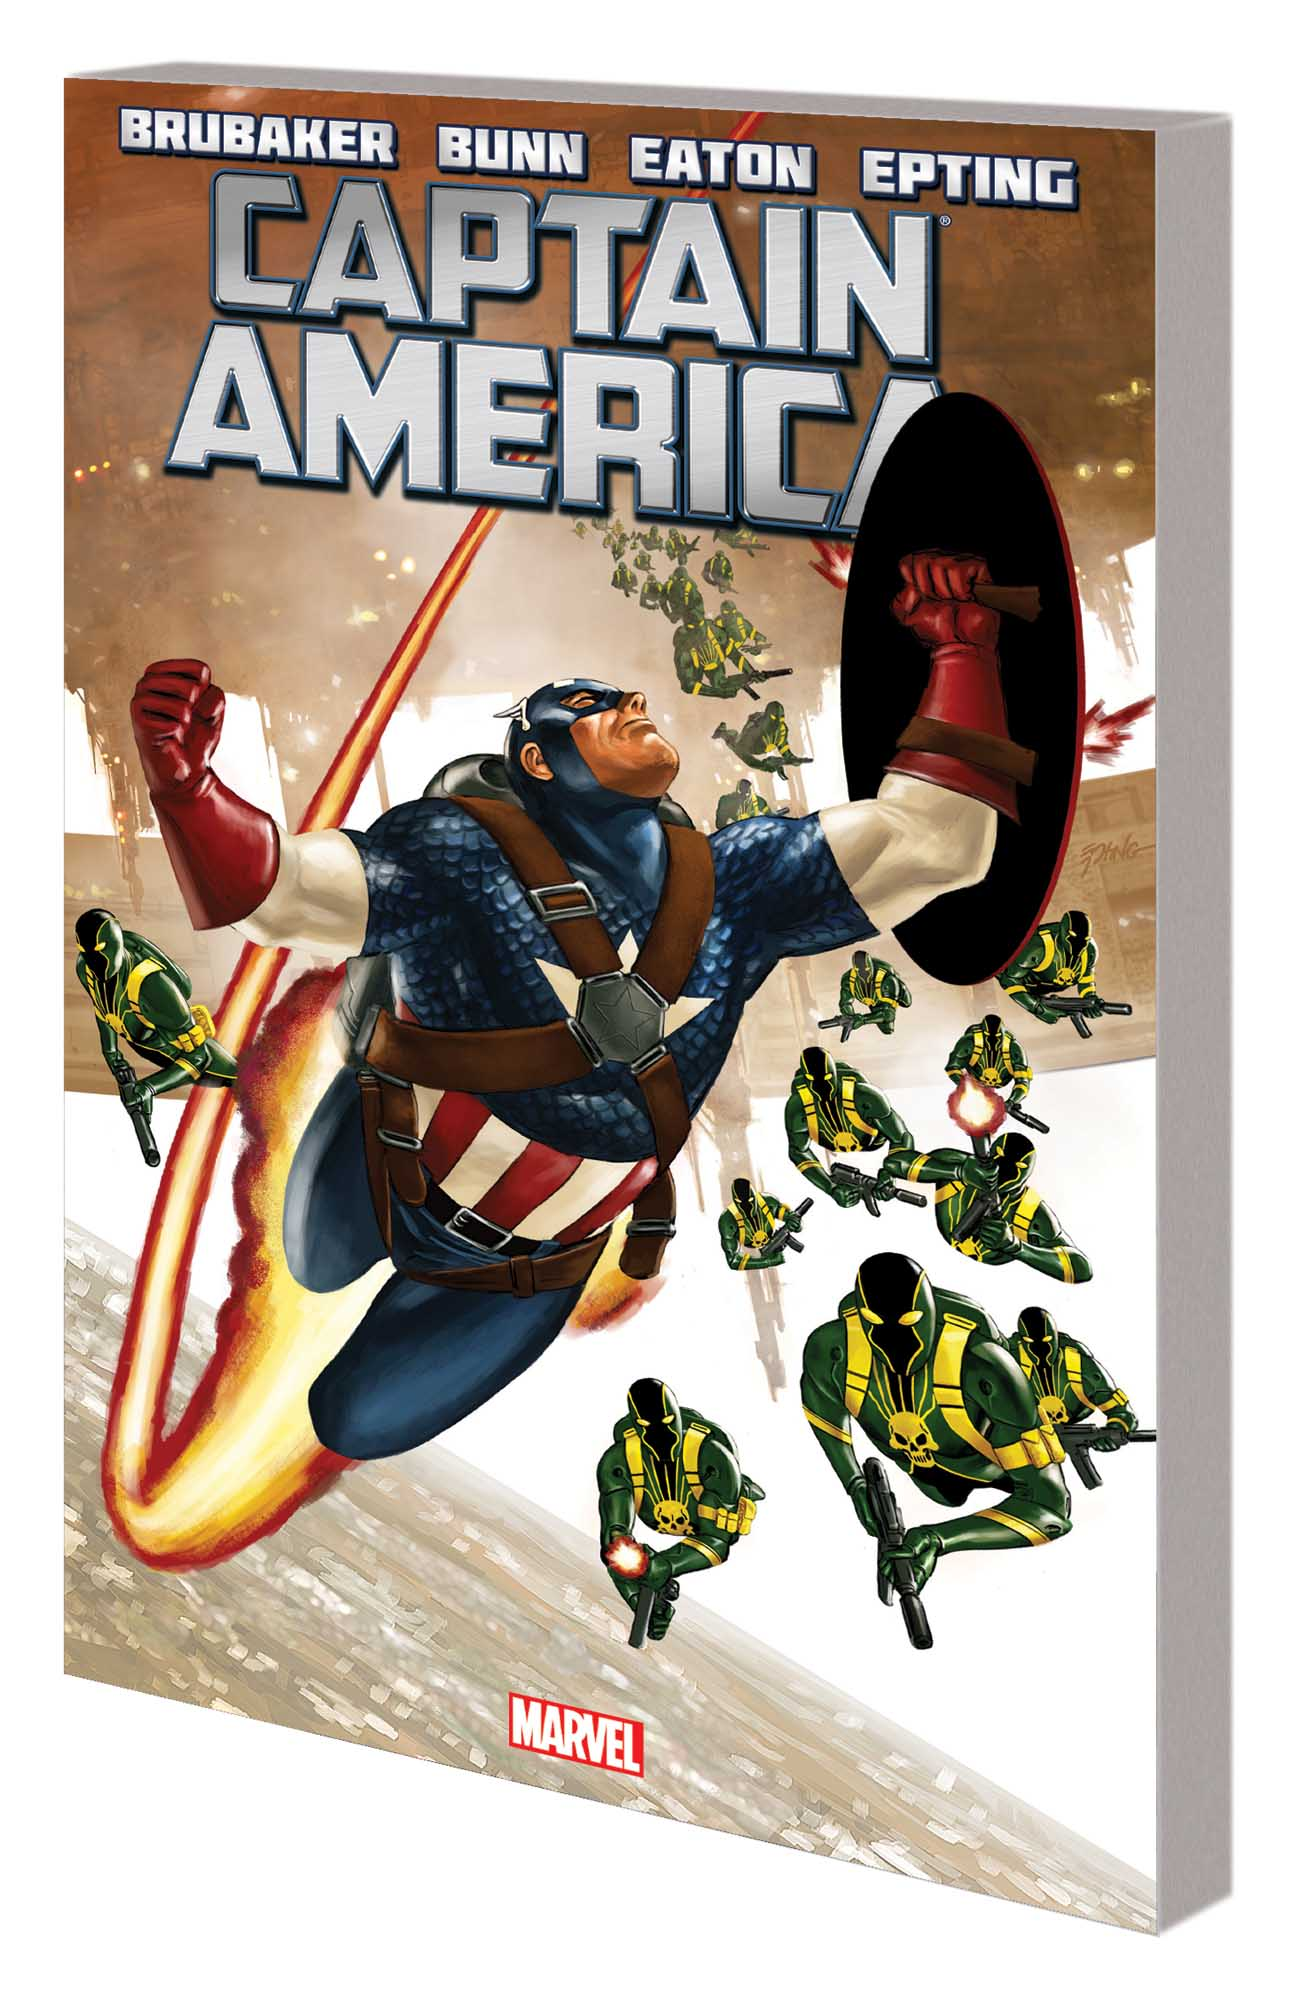 CAPTAIN AMERICA BY ED BRUBAKER VOL. 4 TPB (Trade Paperback)